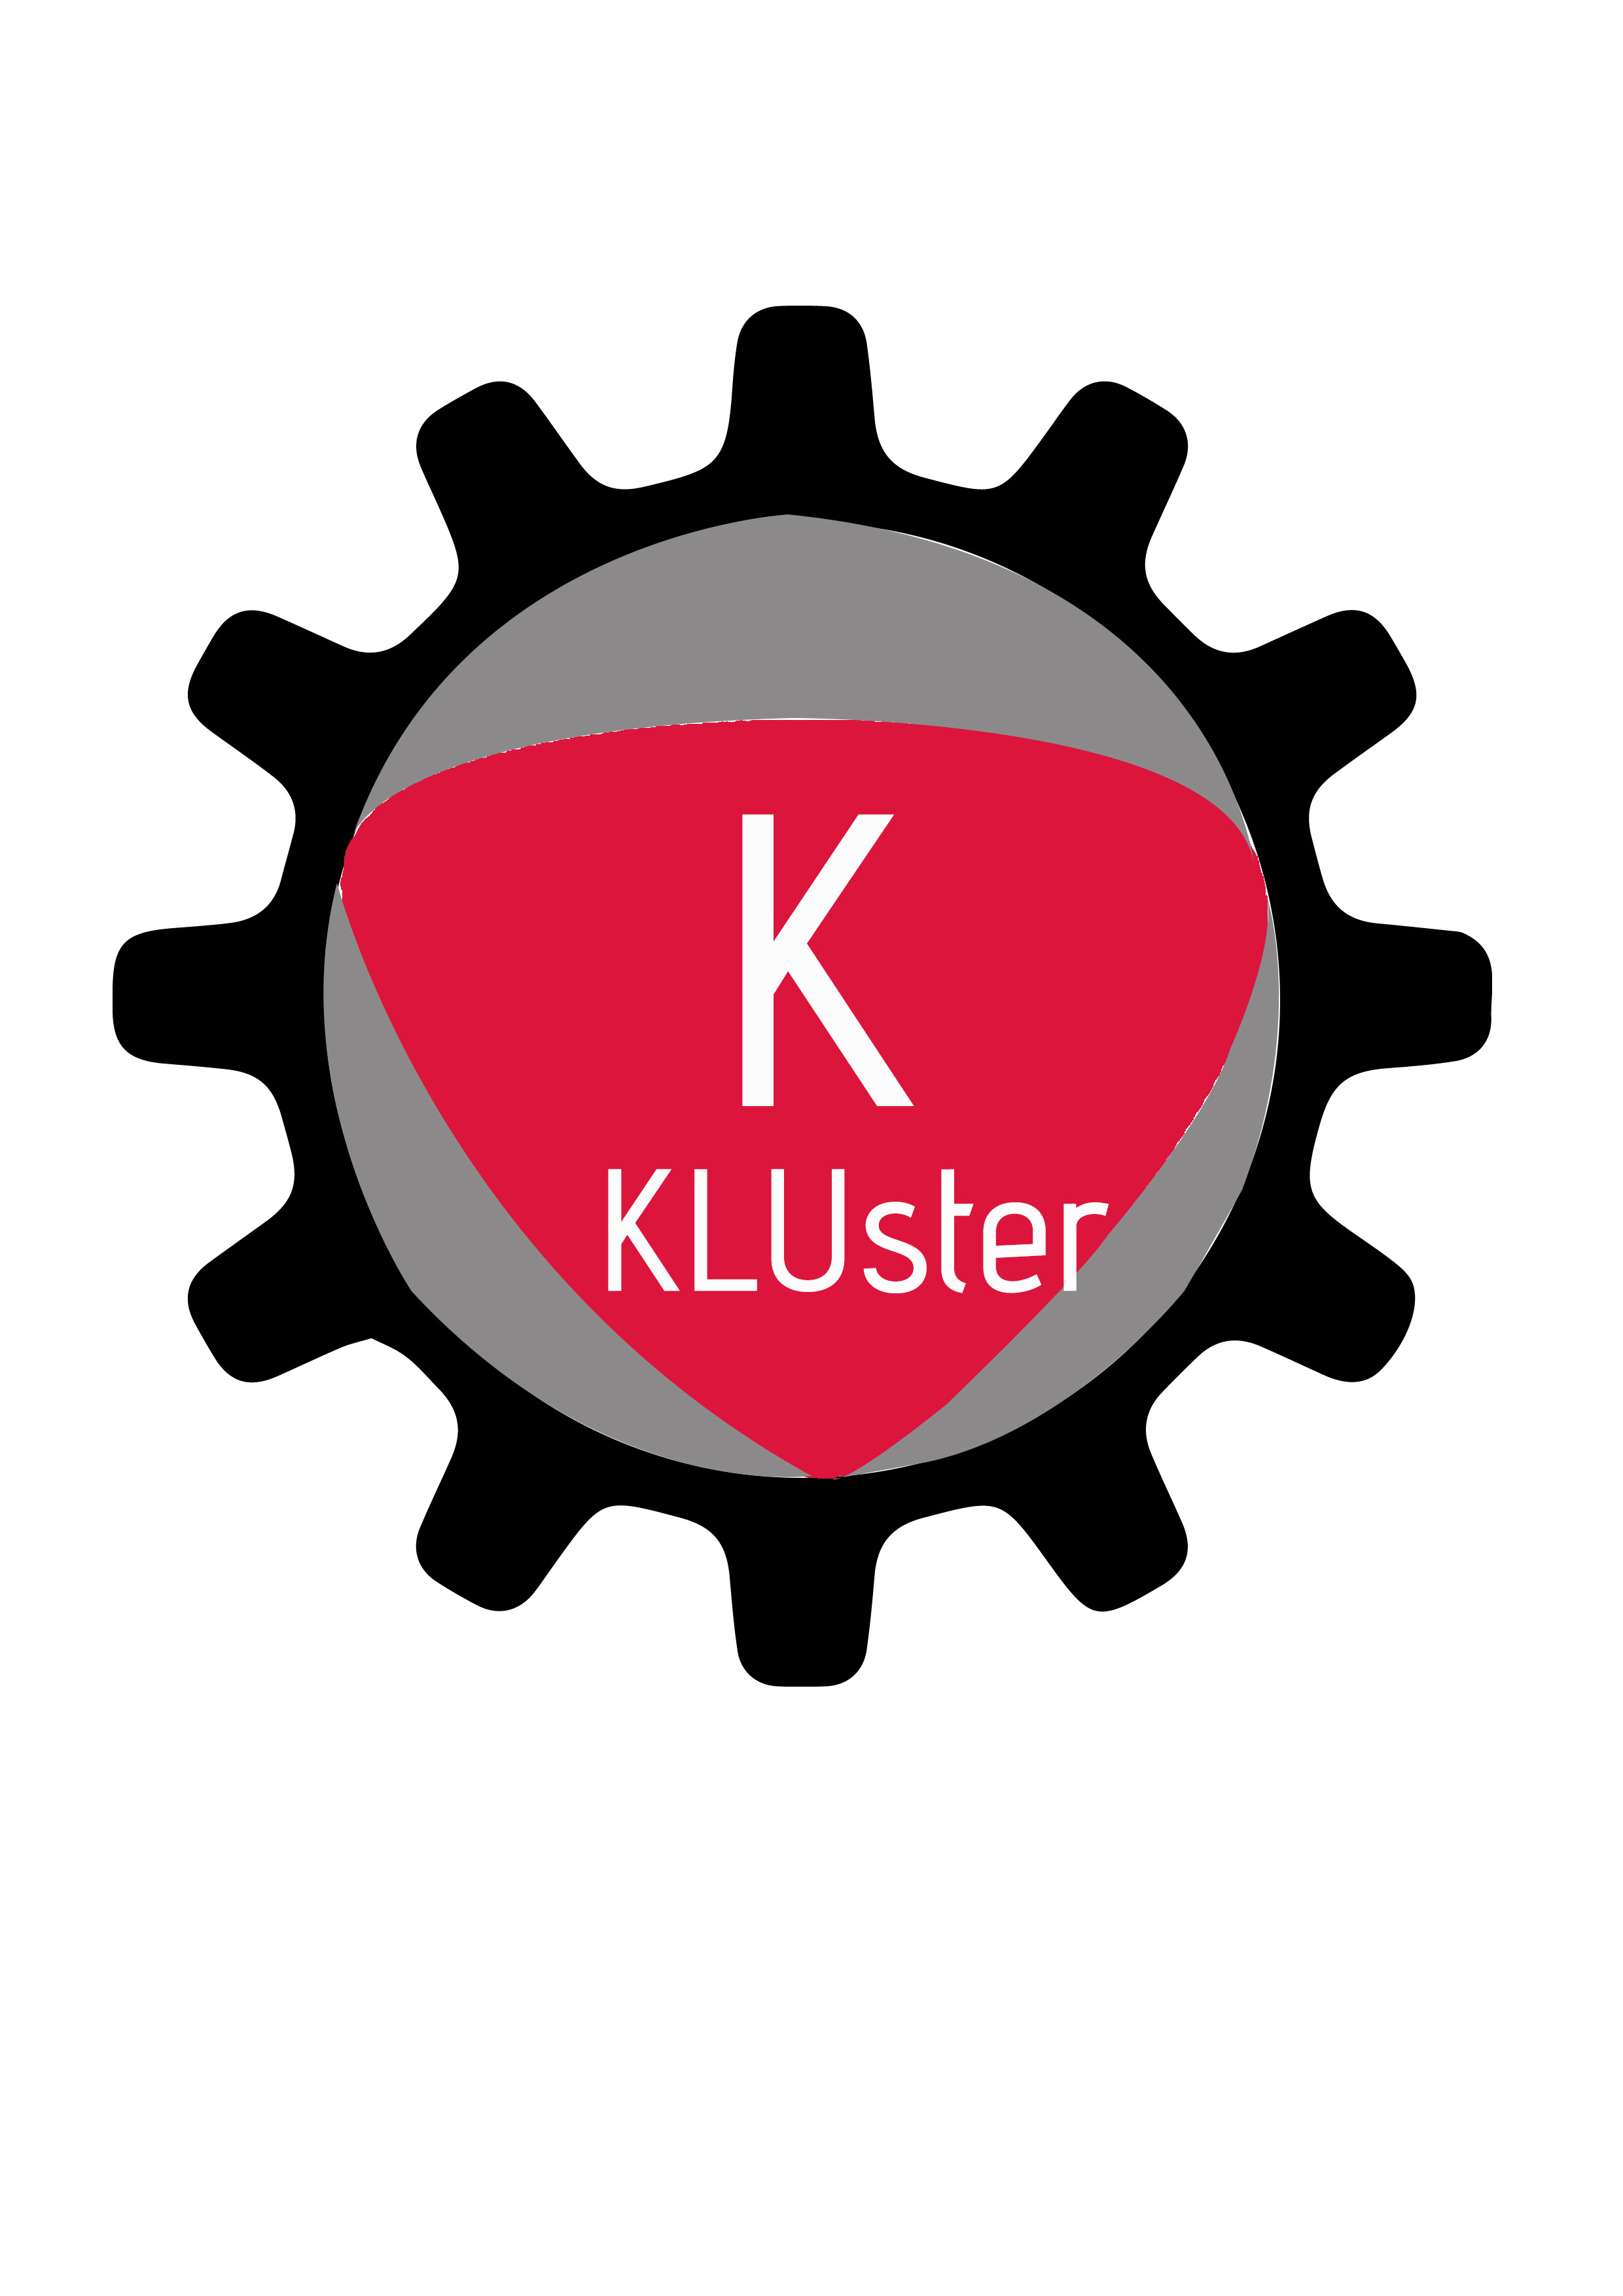 kluster wallpapers/logo.png